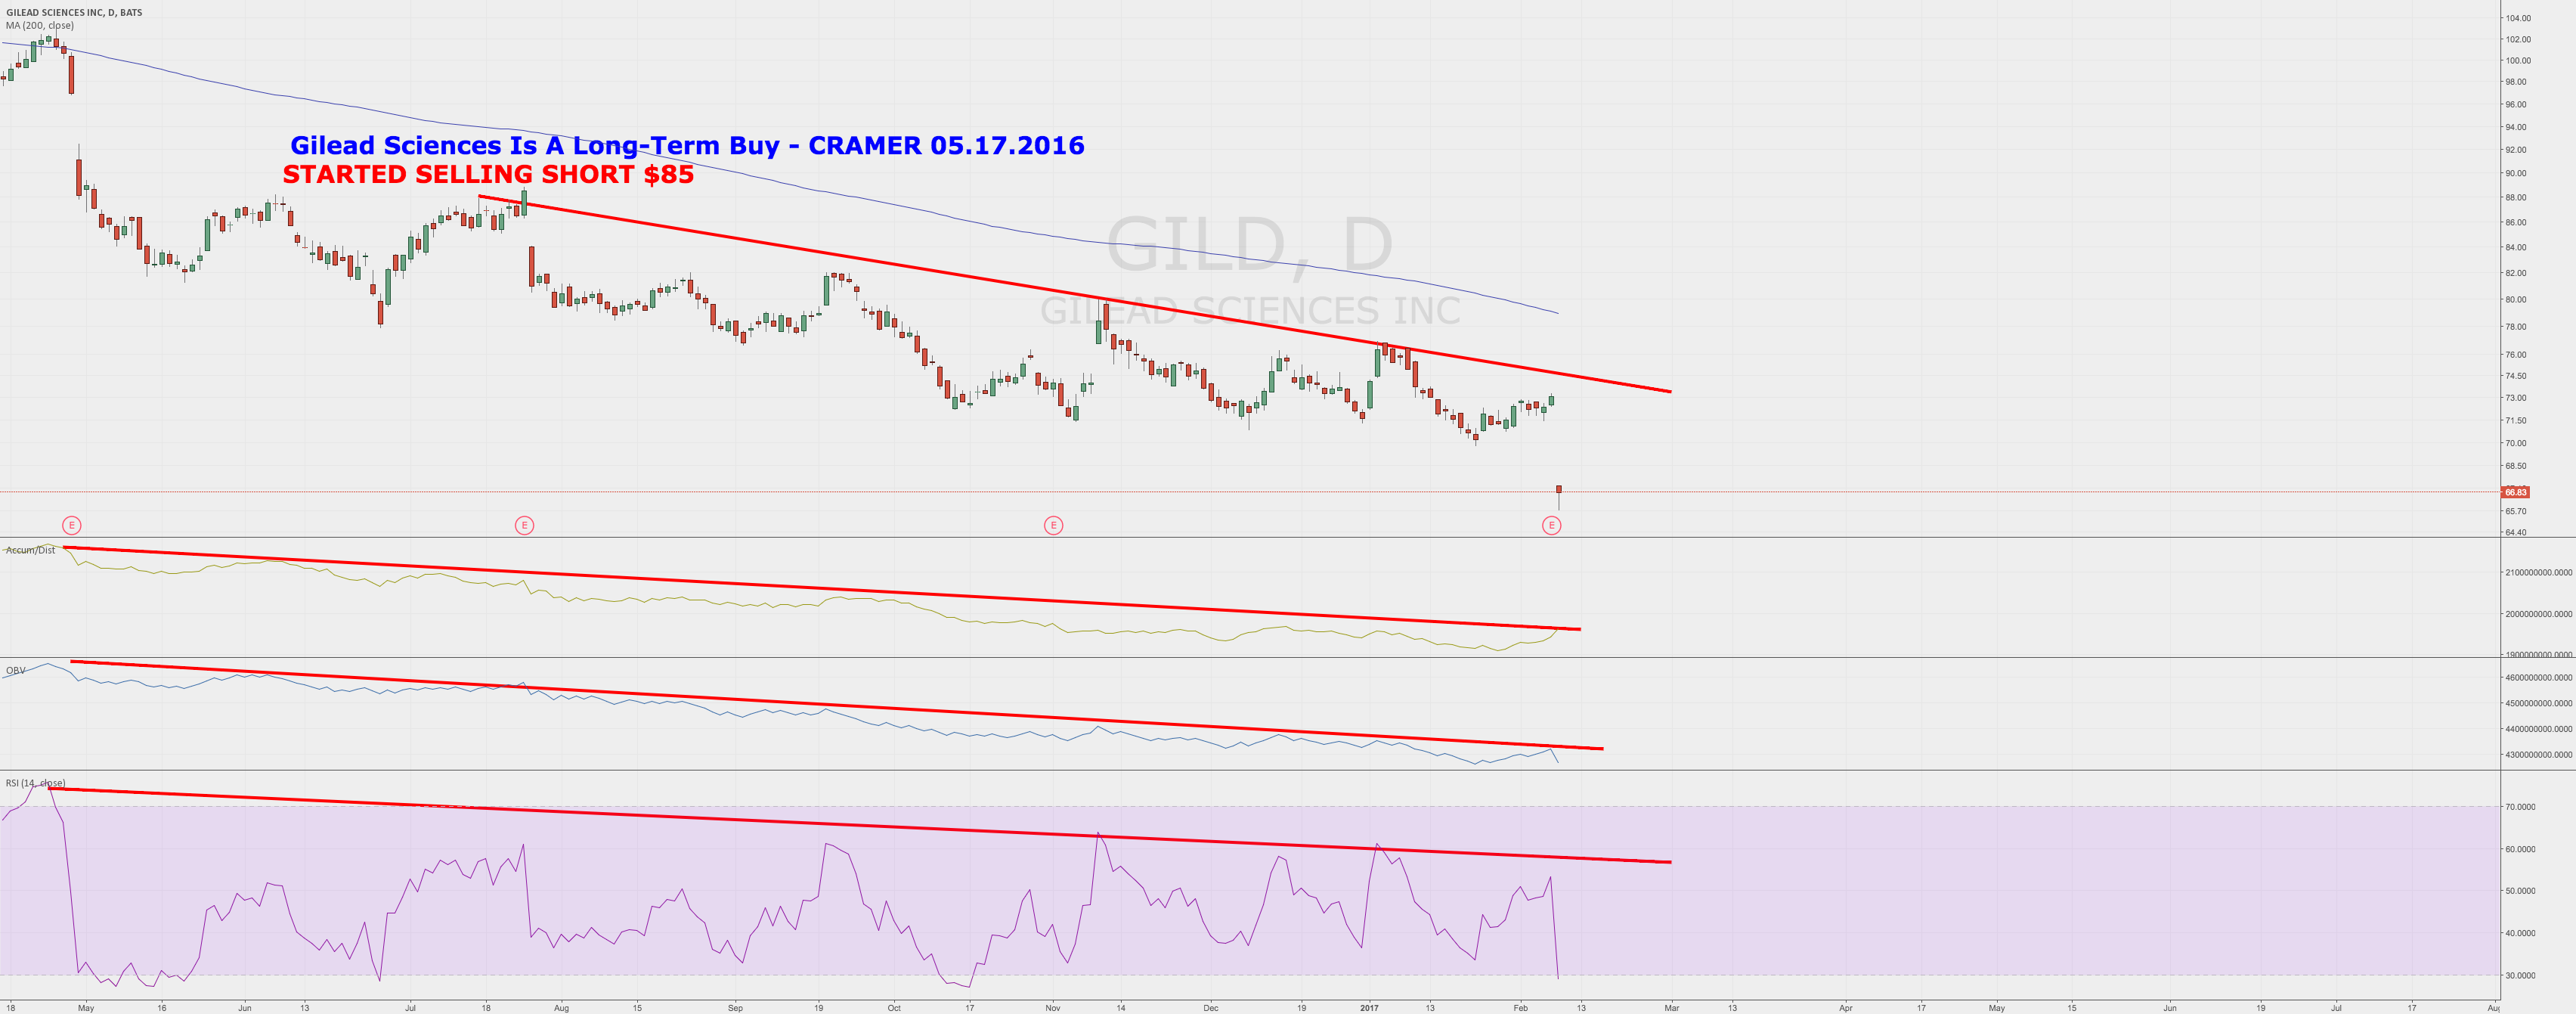 Gilead Sciences Is A Long-Term Buy - CRAMER 05.17.2016 - SHORT!!